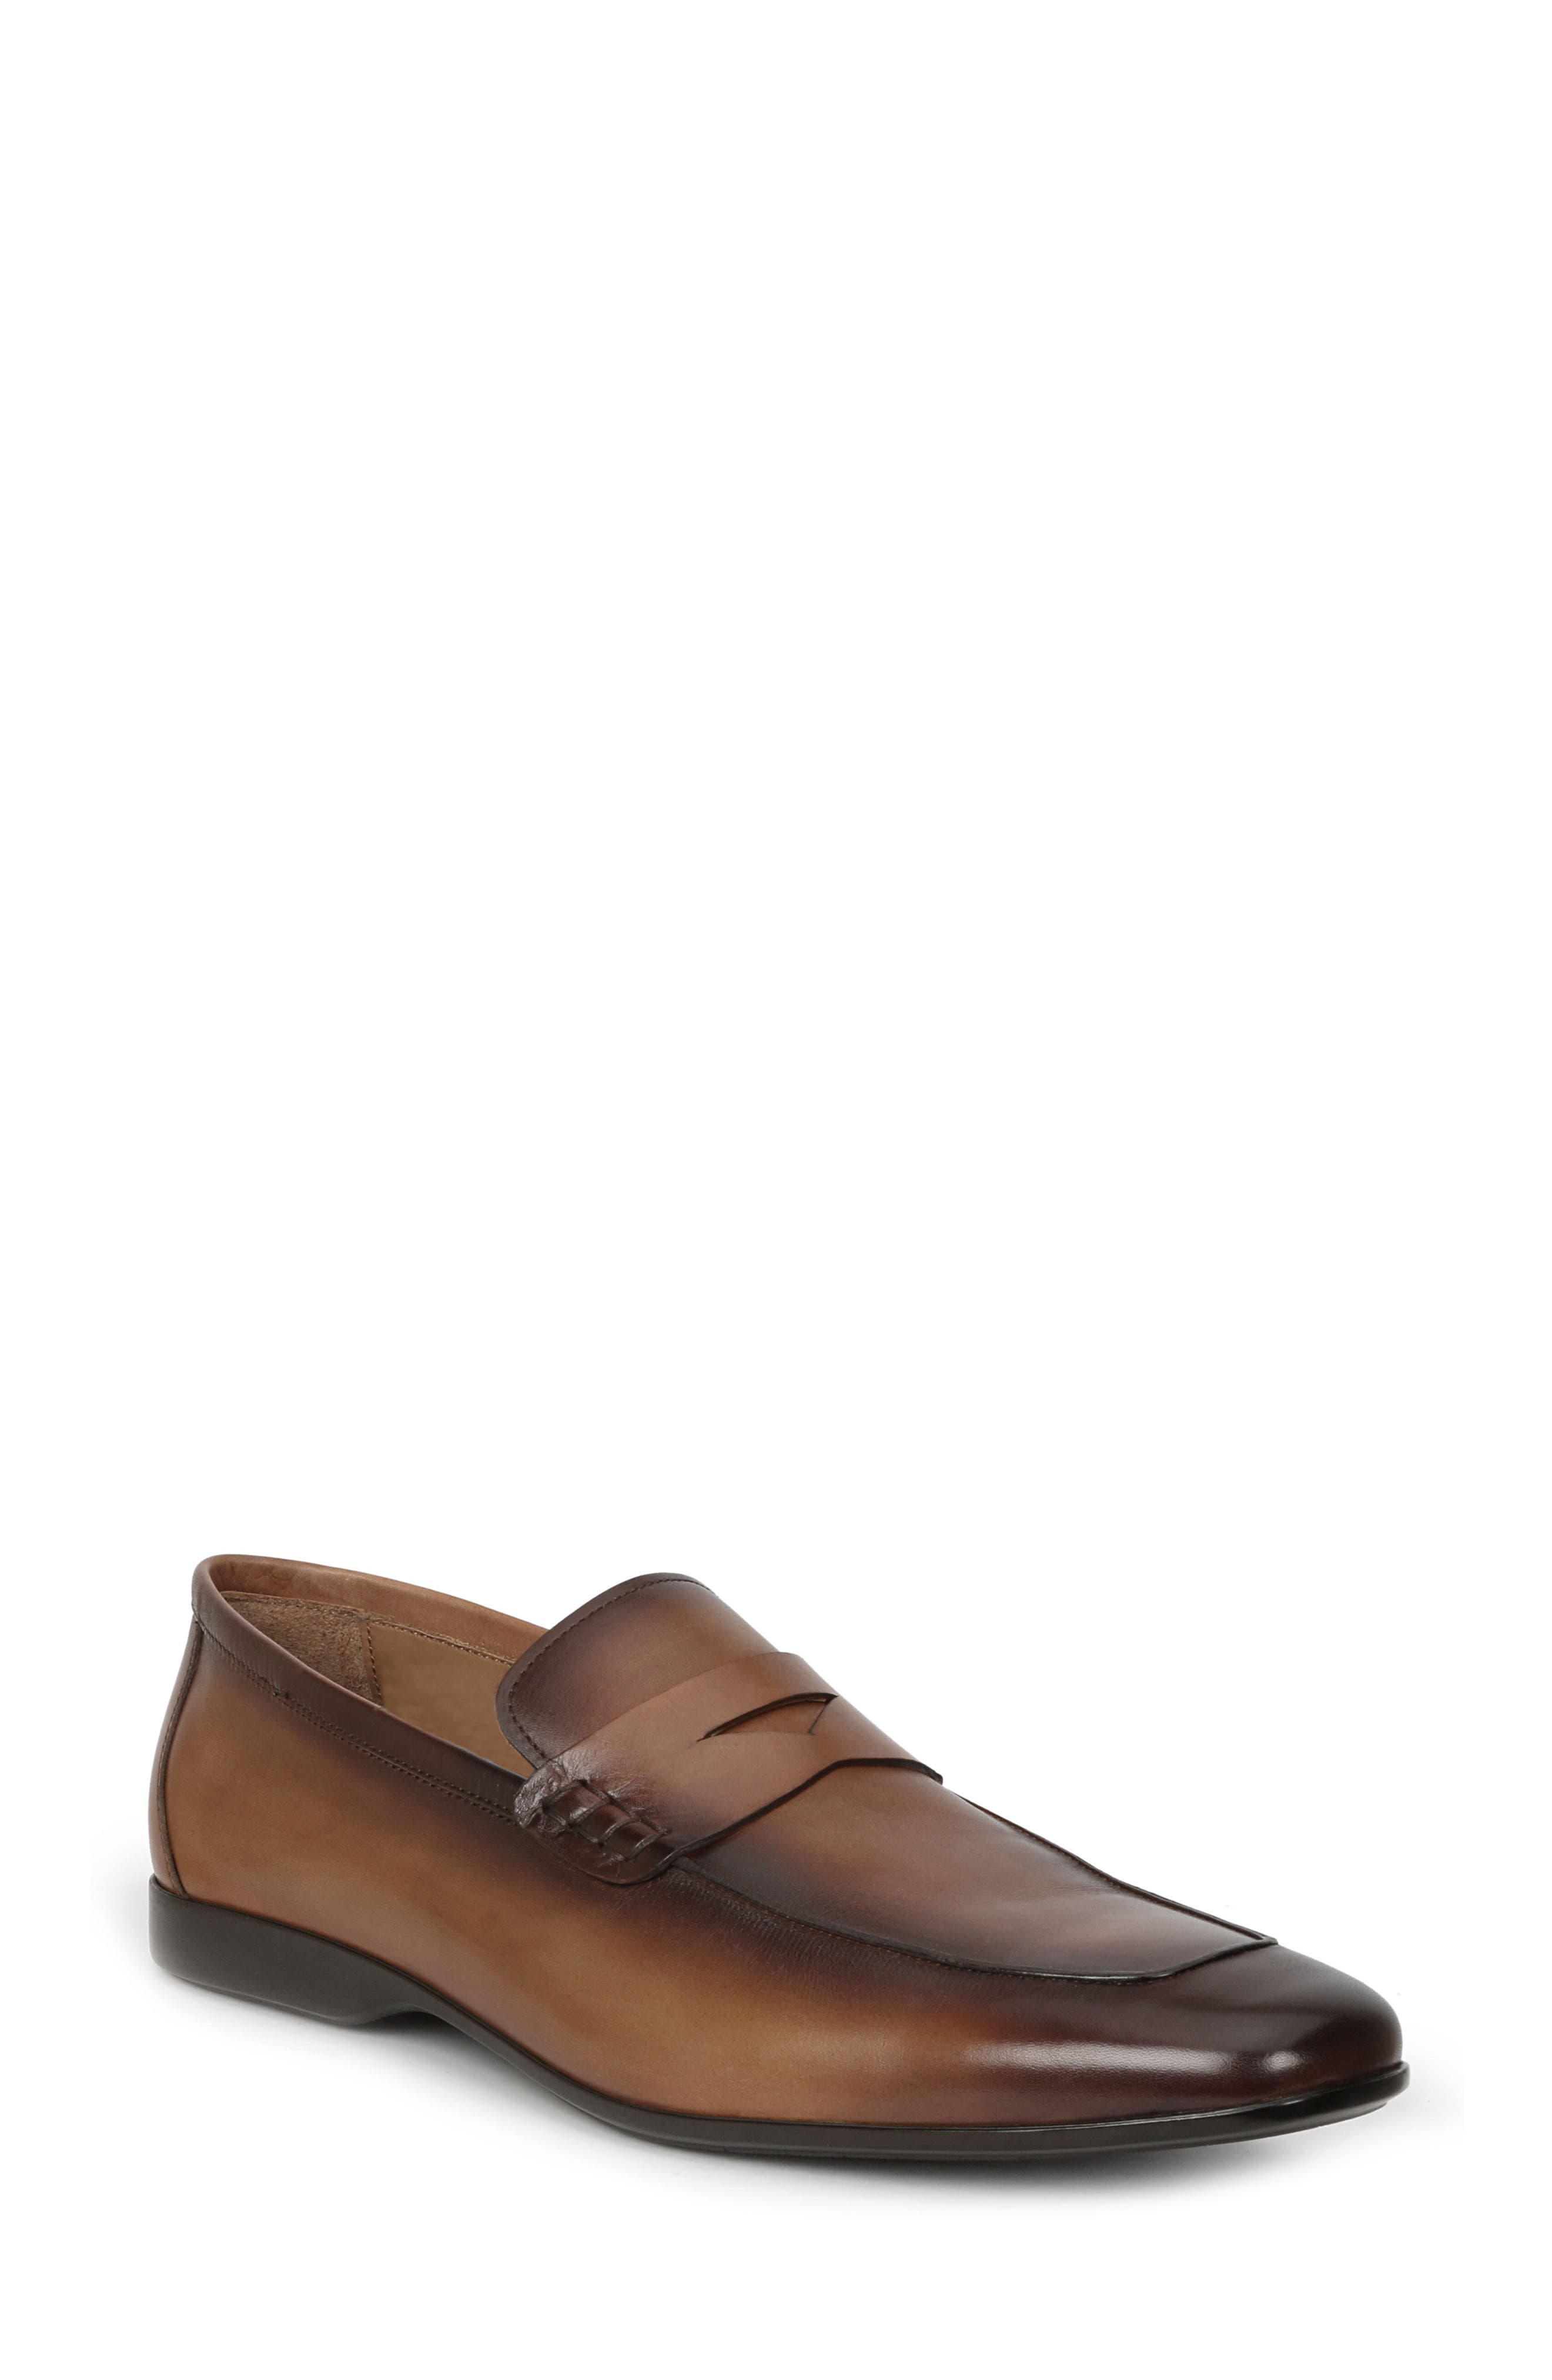 BRUNO MAGLI Margot Burnished Calf Penny Loafers in Cognac